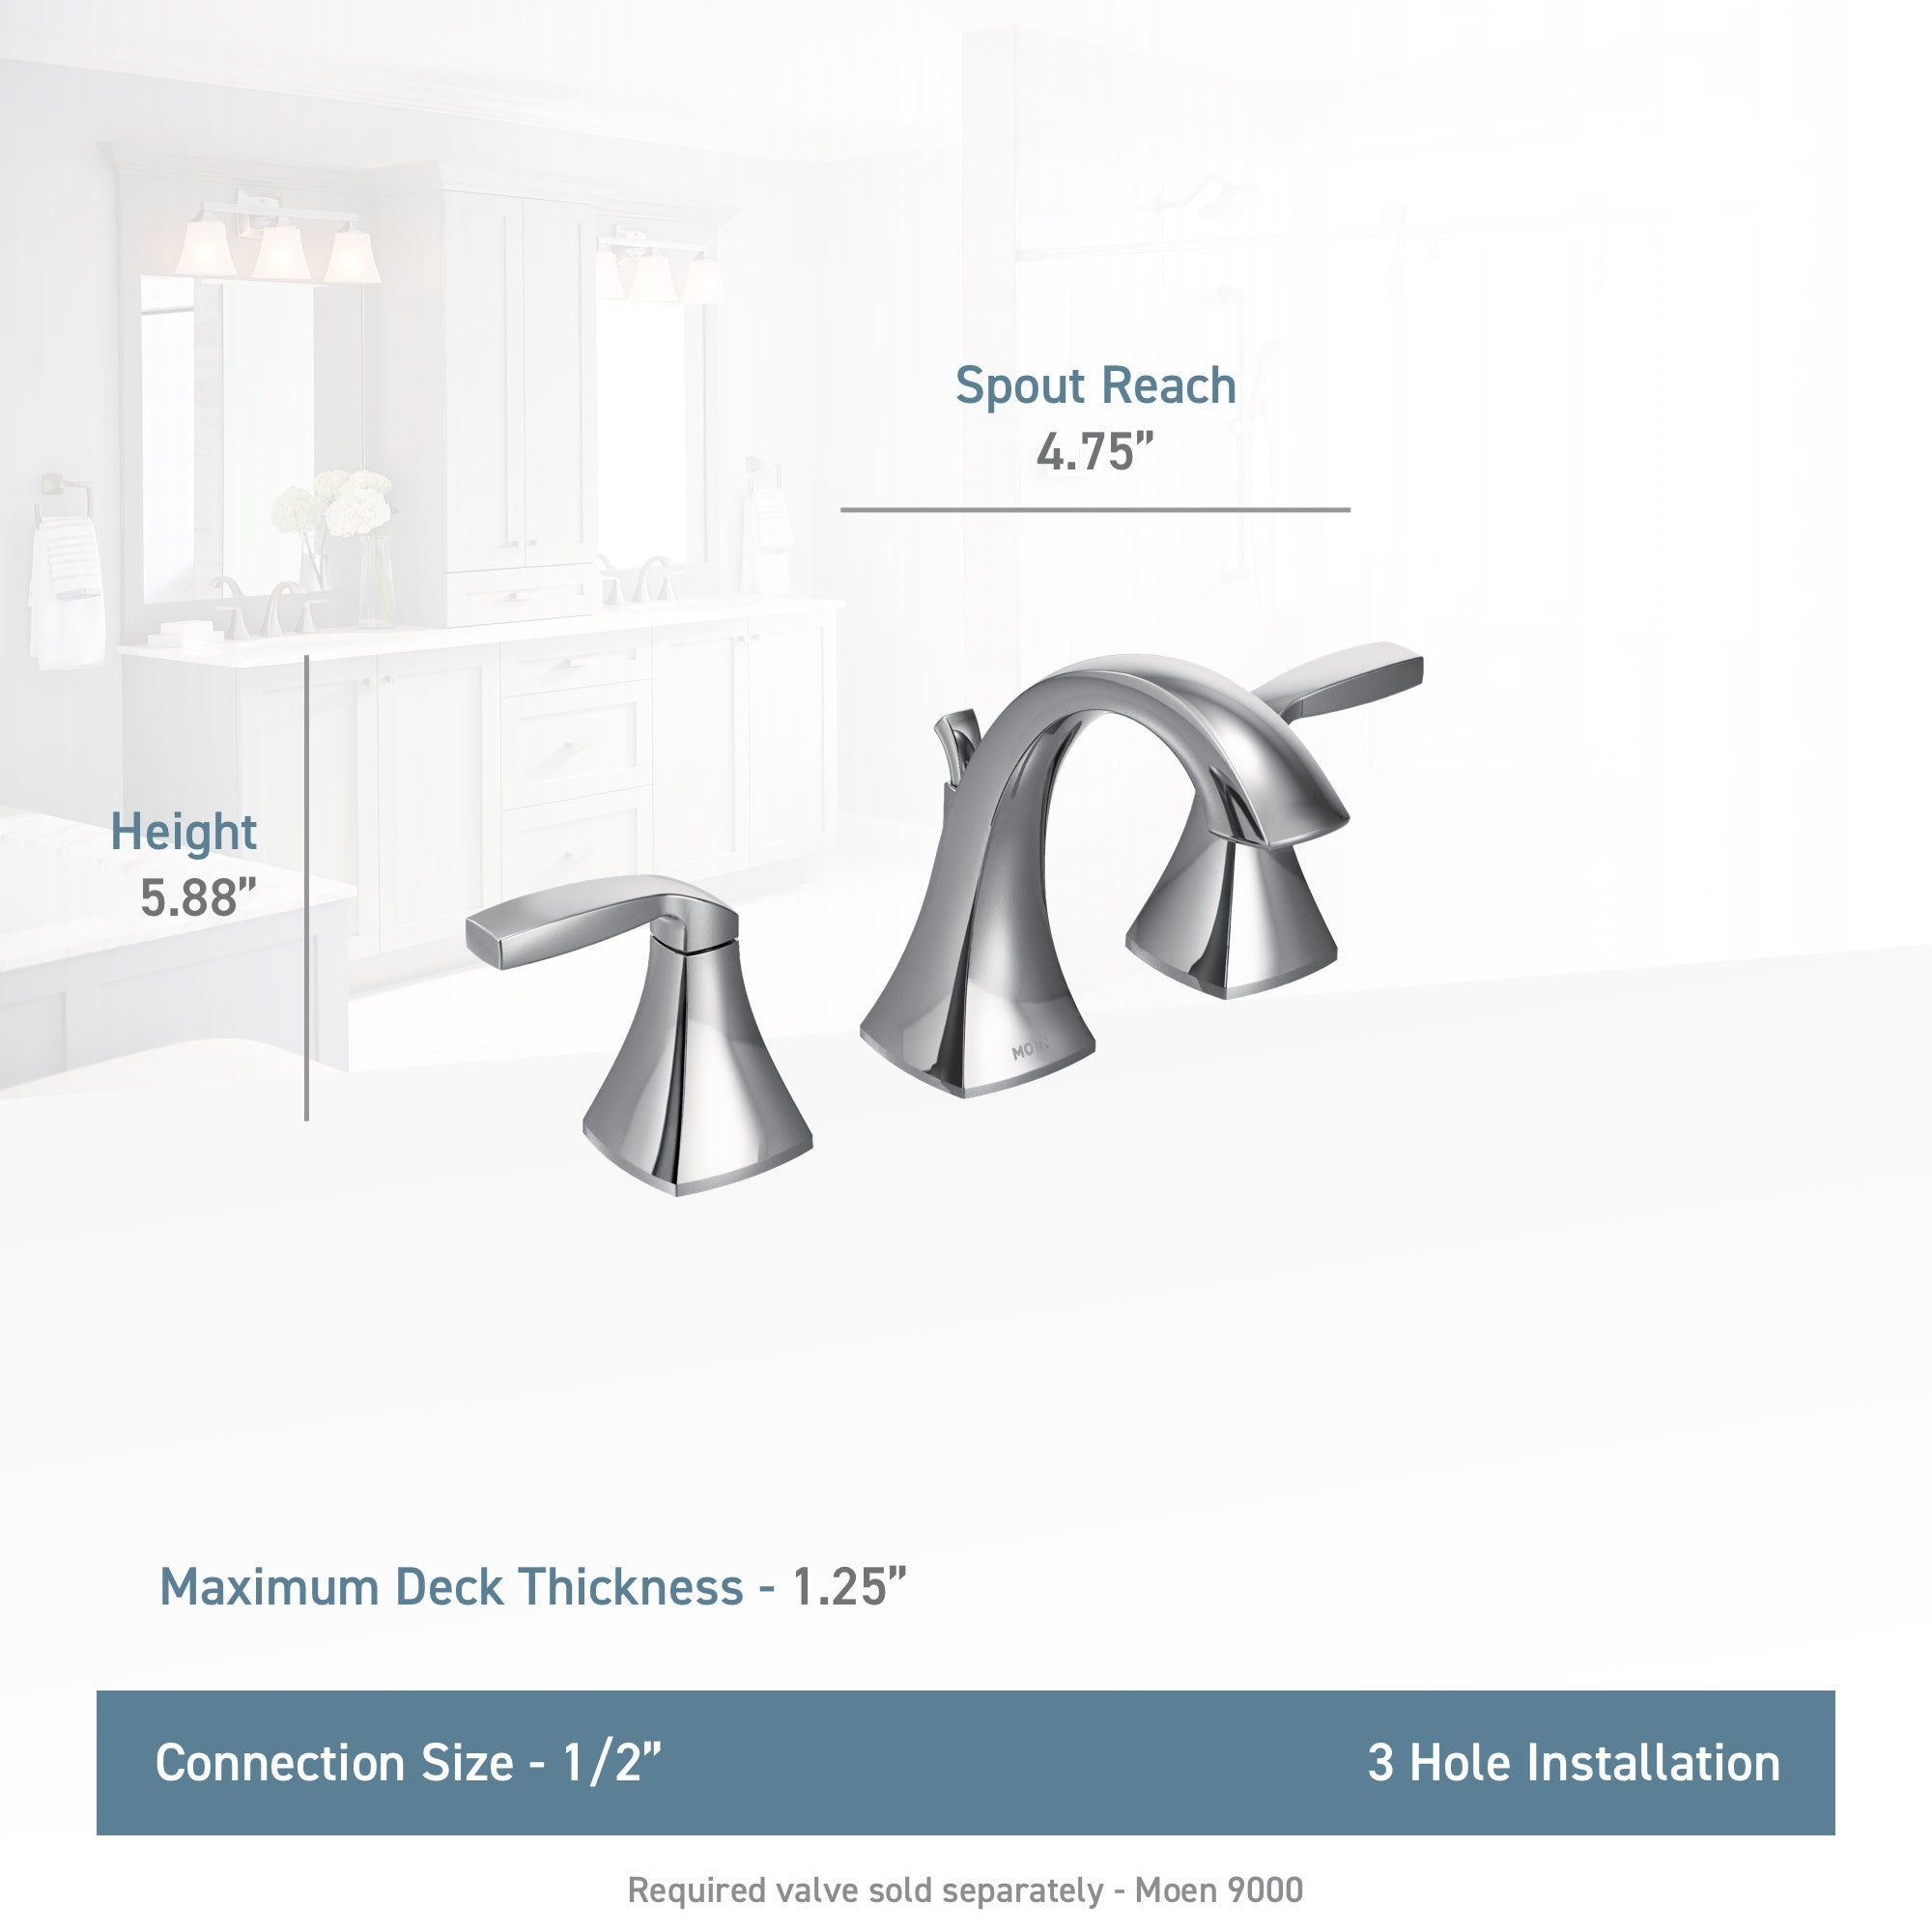 Moen T6905 Voss Two-Handle High-Arc Widespread Bathroom Faucet without Valve Chrome Moen Incorporated